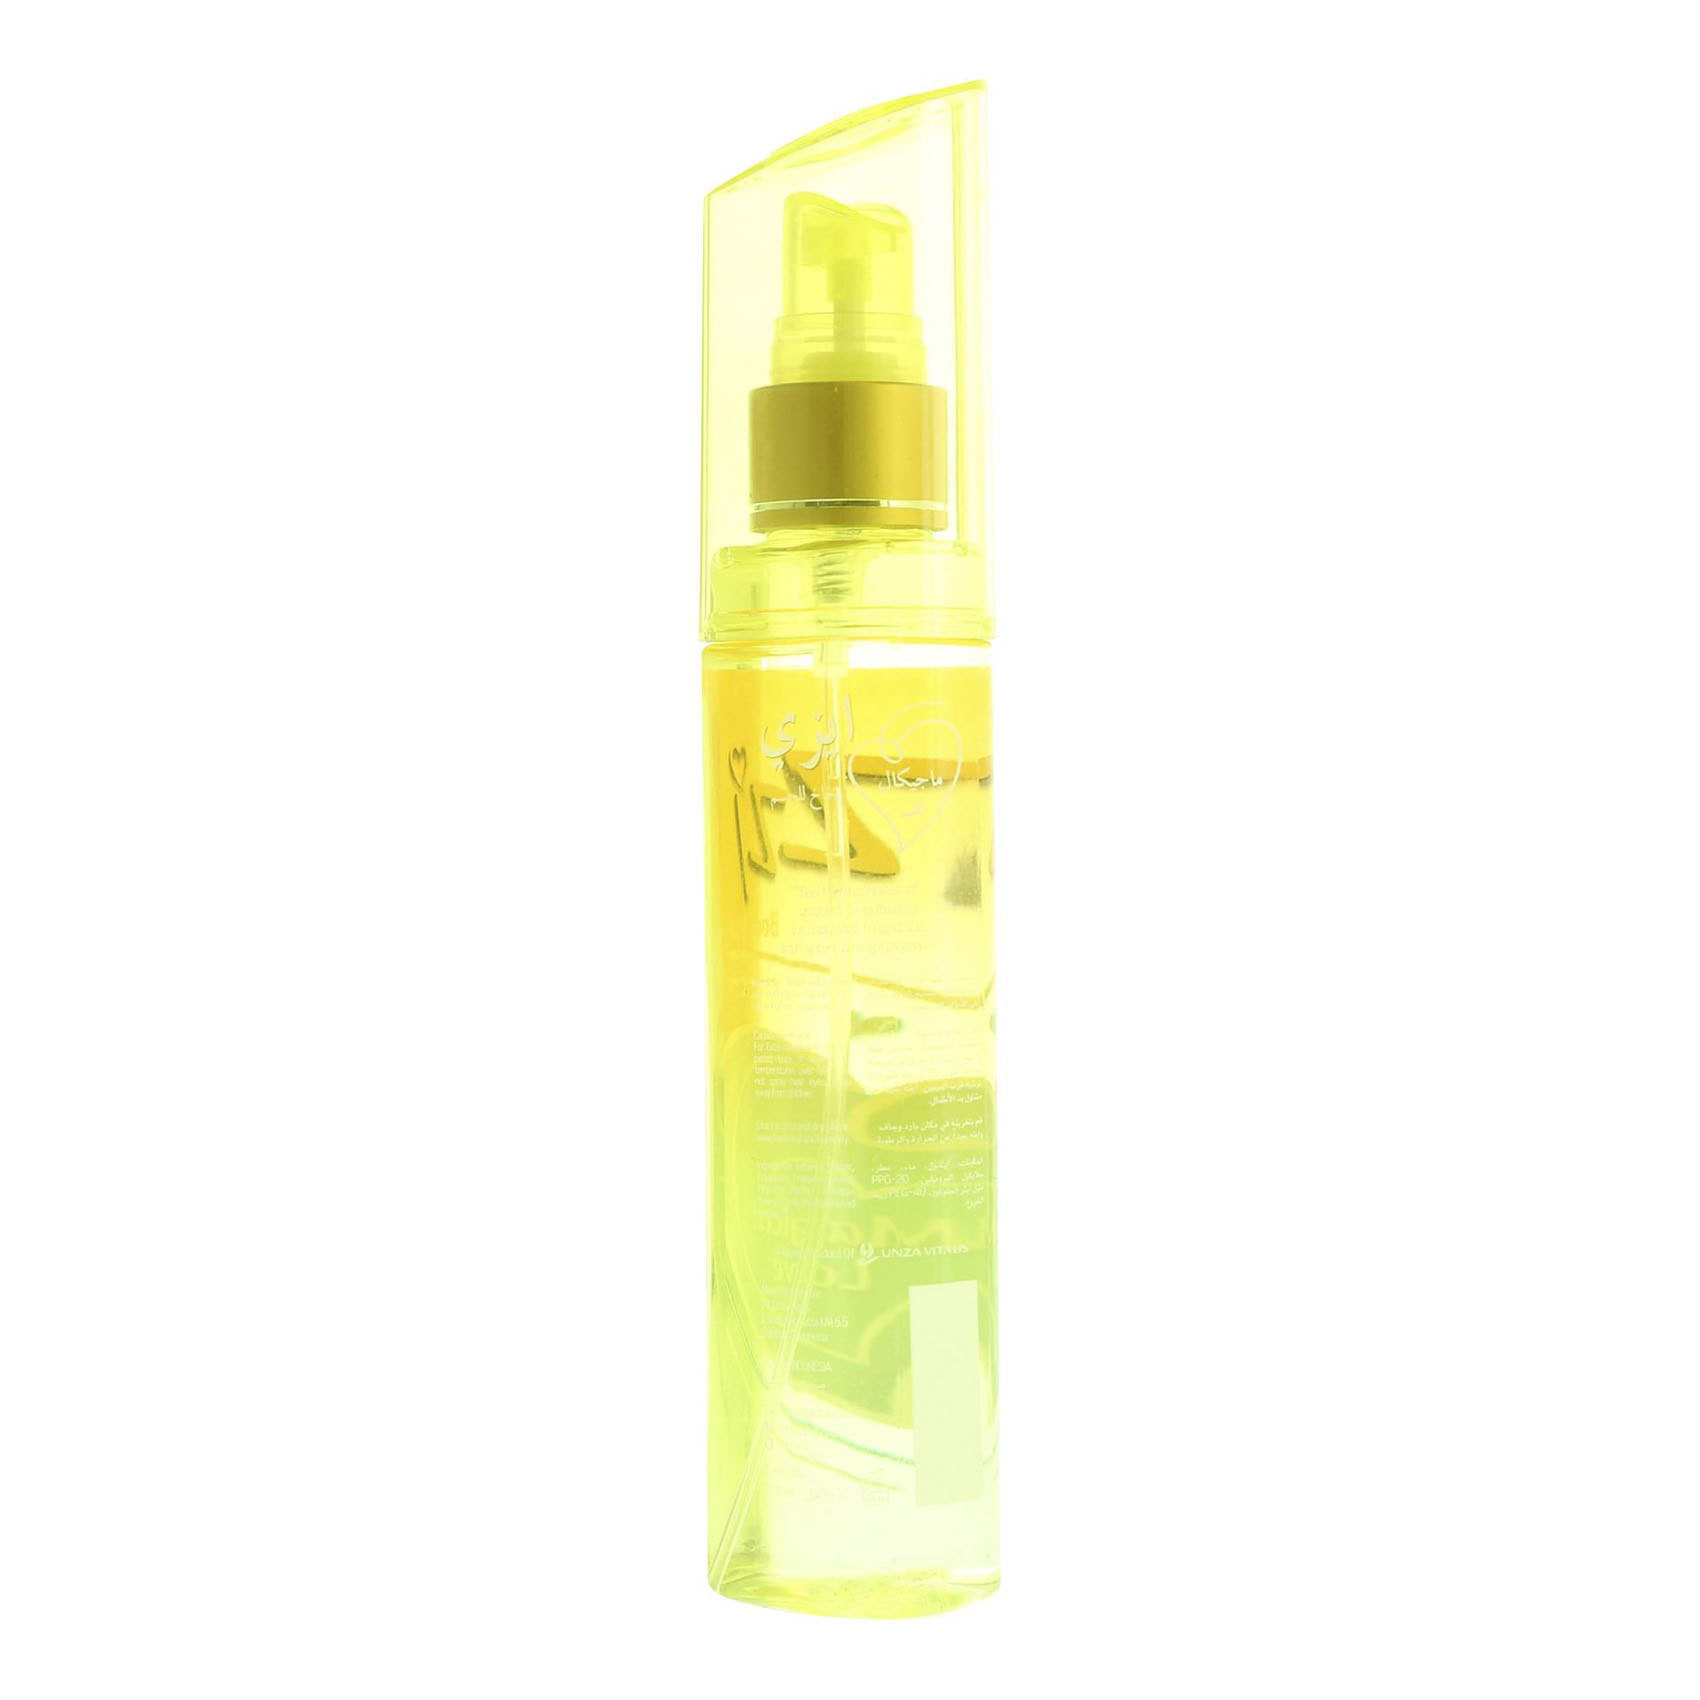 IZZI BODY MIST MAGICAL LOVE 100 ML